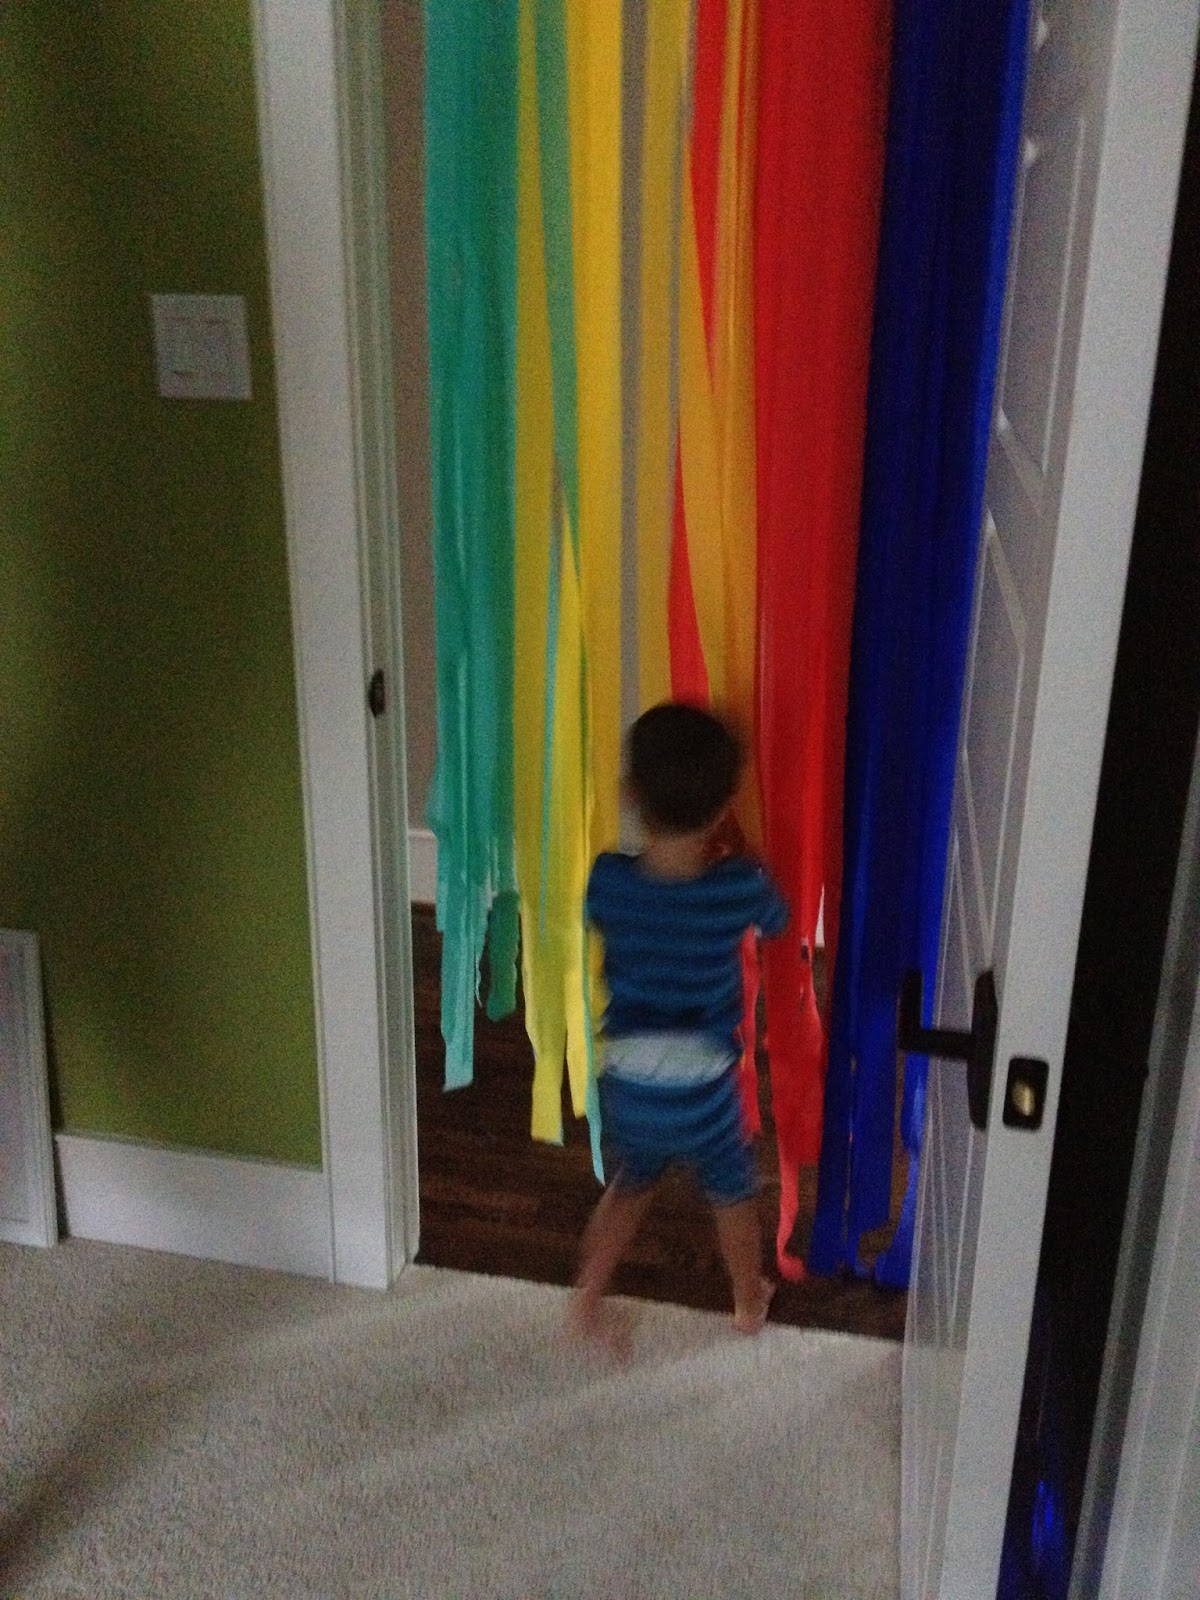 On His Birthday He Woke Up And Ran Through Door Decorated With Streamers Leftover From Party Decorations LOVED It